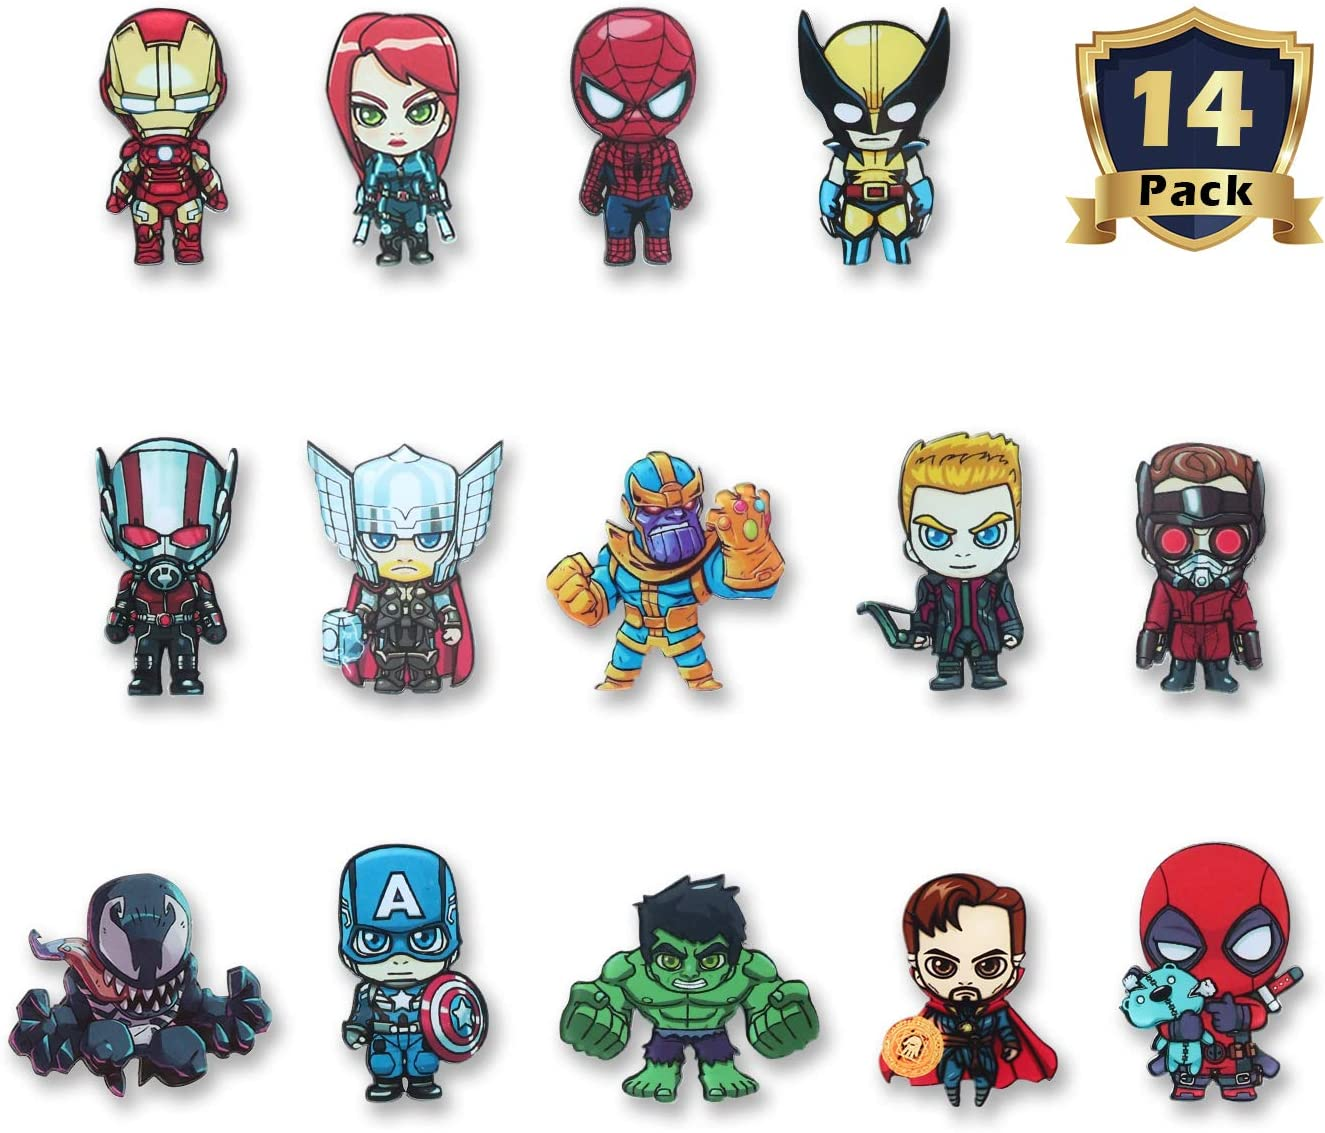 HXDZFX The Avengers 14PCS Refrigerator Magnets - Marvel Heroes Fridge Magnets Set - Marvel Characters - Final Battle Perfect Decorative Magnet